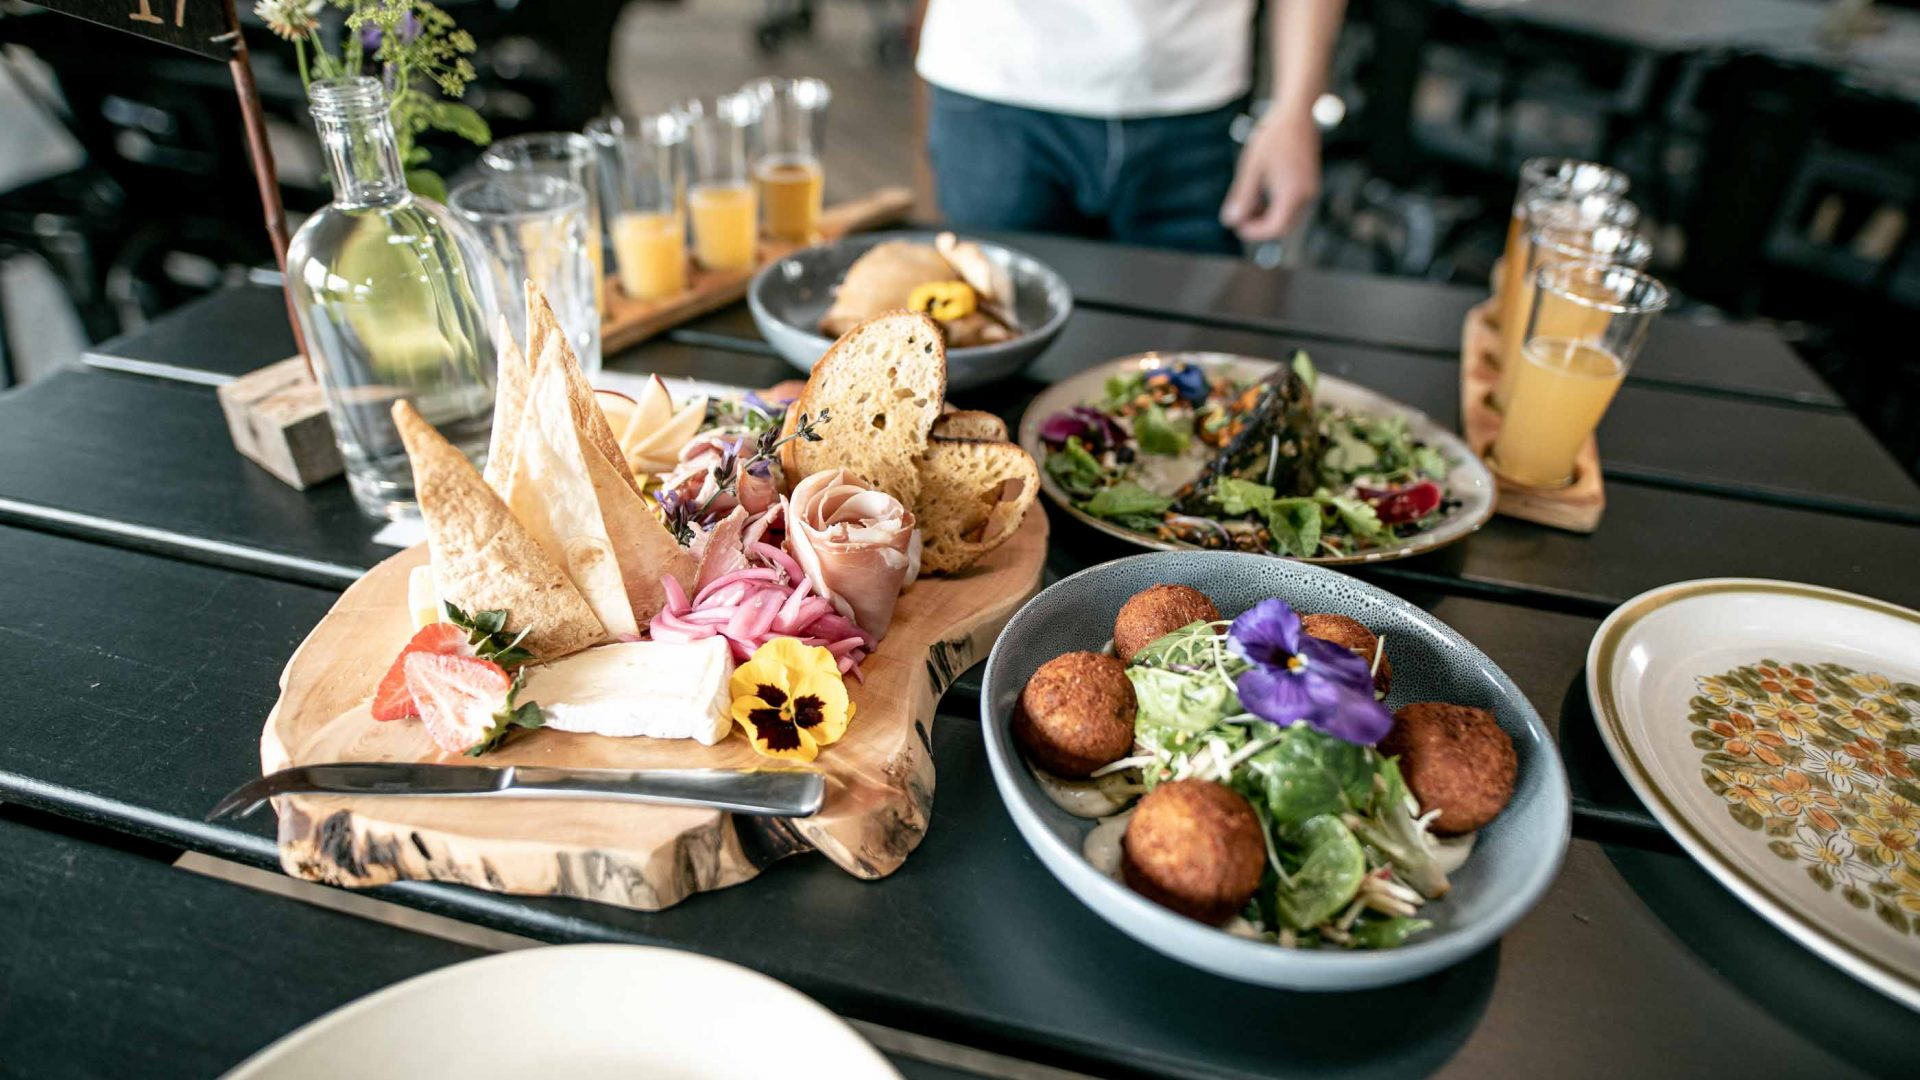 A feast of fresh food and drinks on a wooden table.